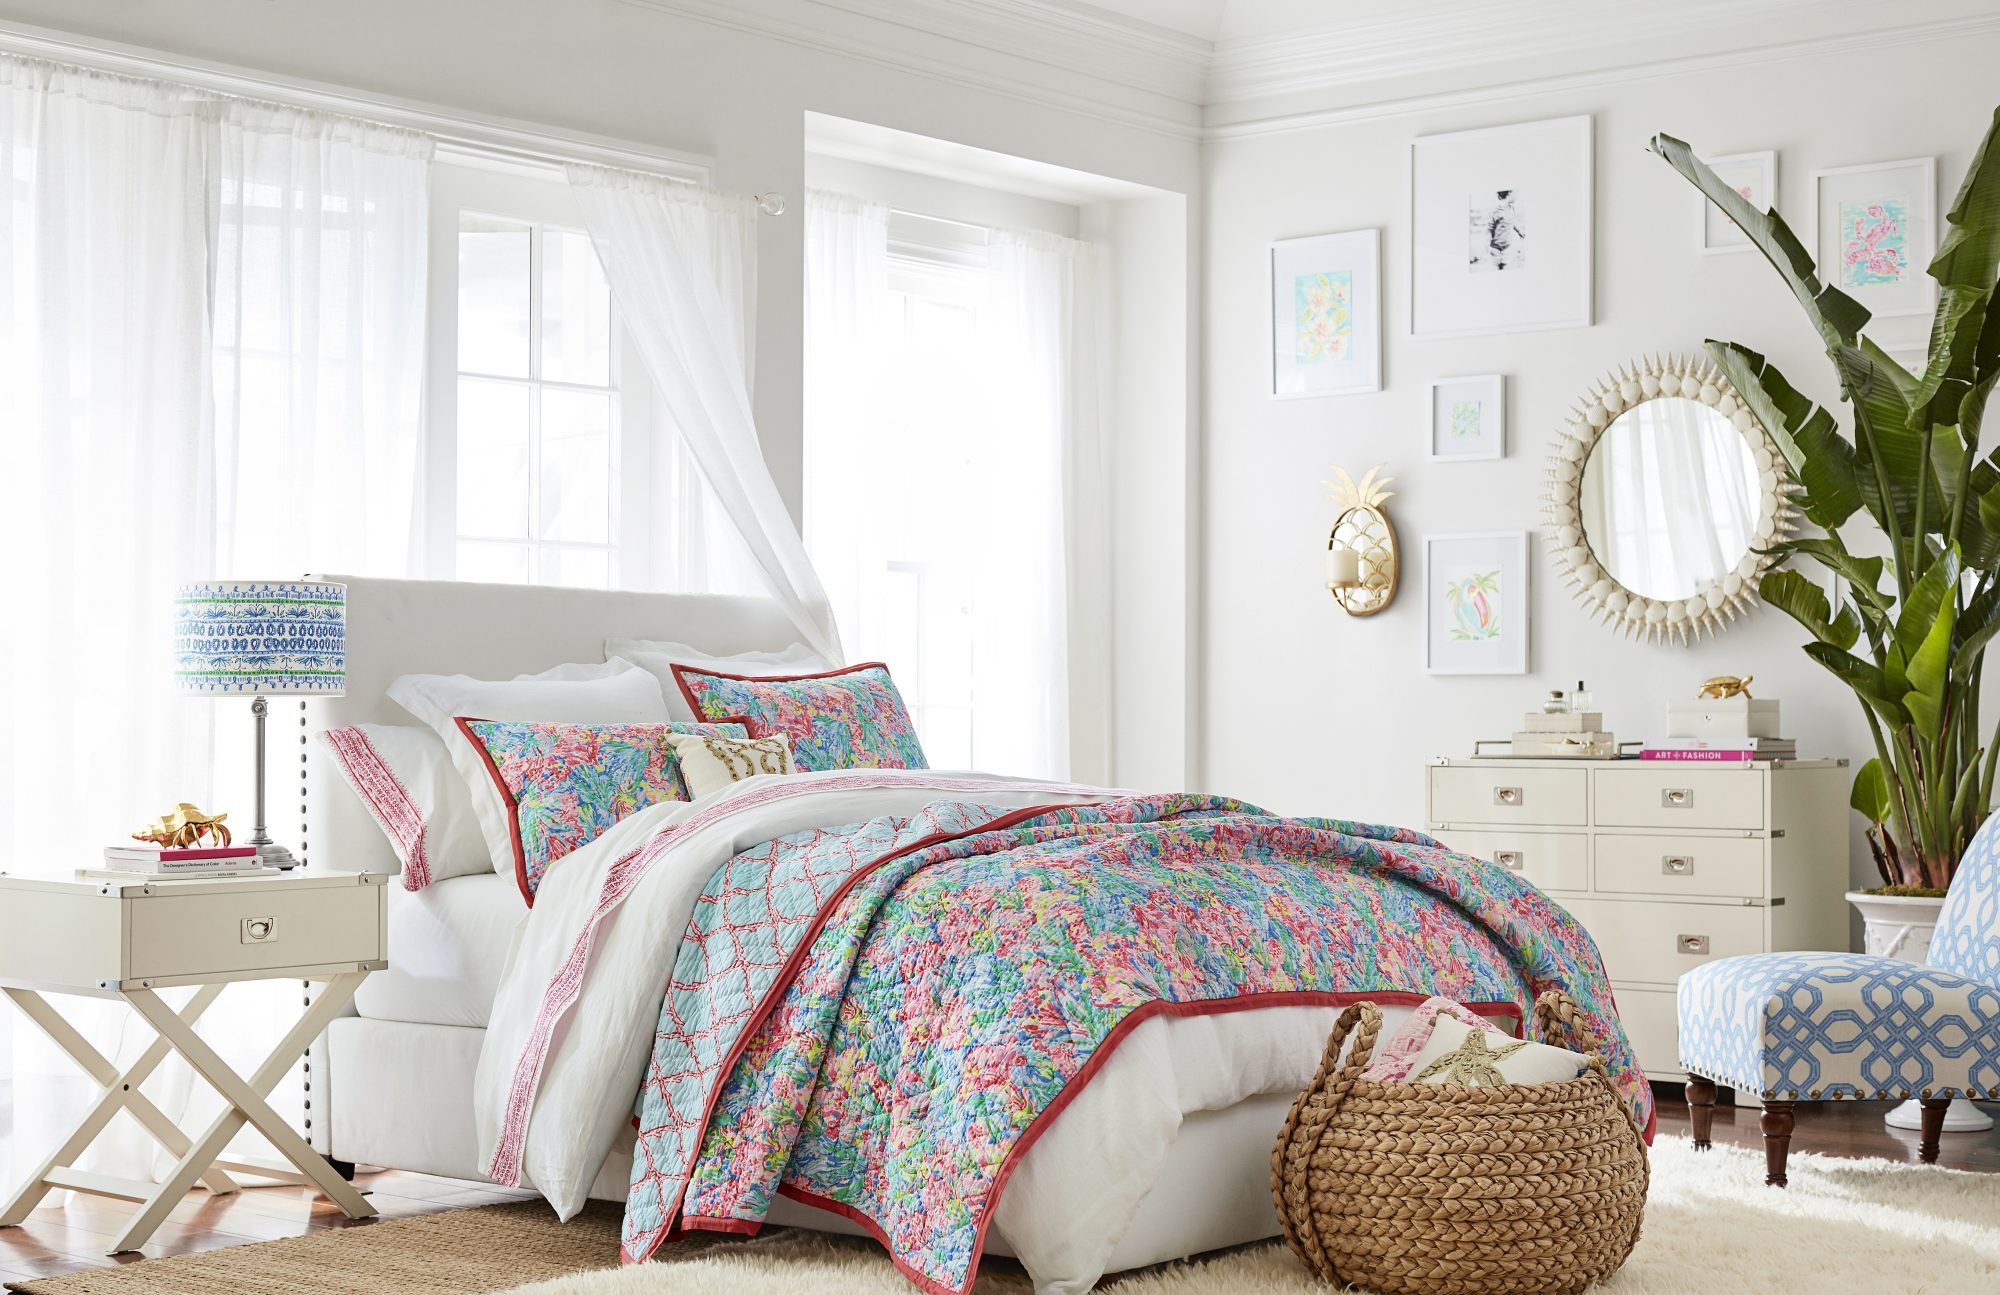 Pottery Barn x Lilly Pulitzer Is Here!